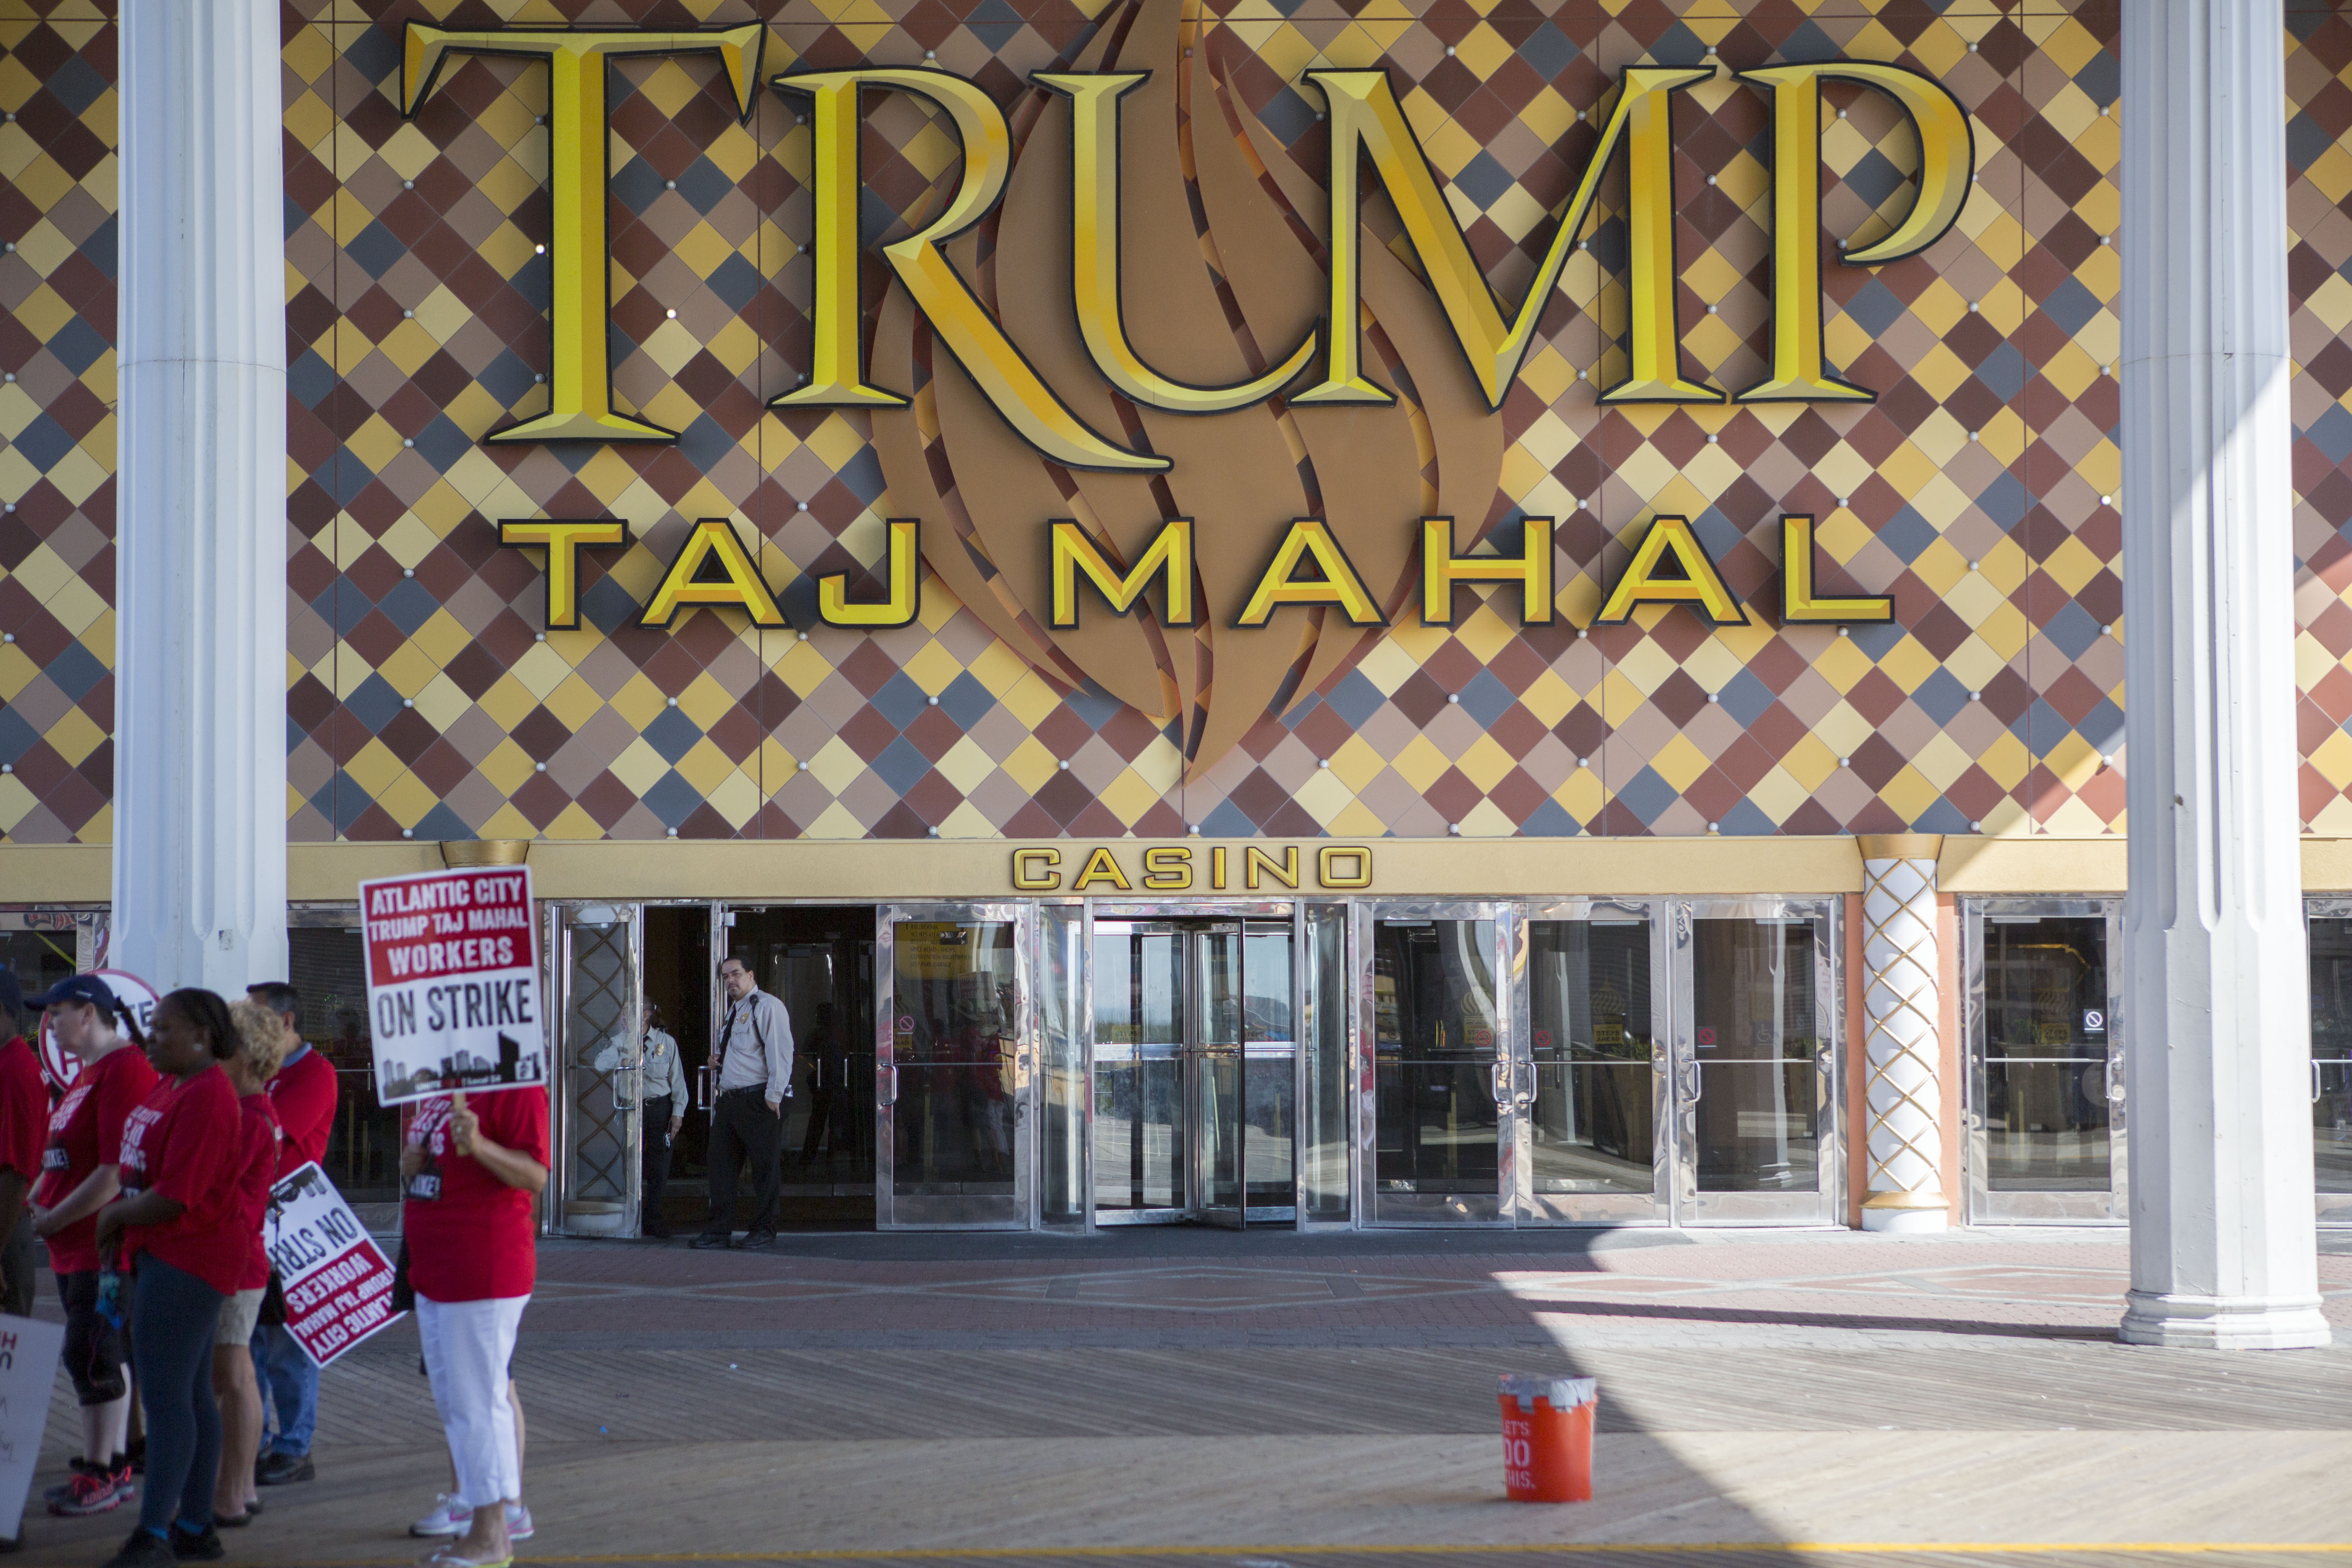 Unite Here local 54 casino worker's union members protest outside Trump Taj Mahal casino on July 6, 2016 in Atlantic City, New Jersey.